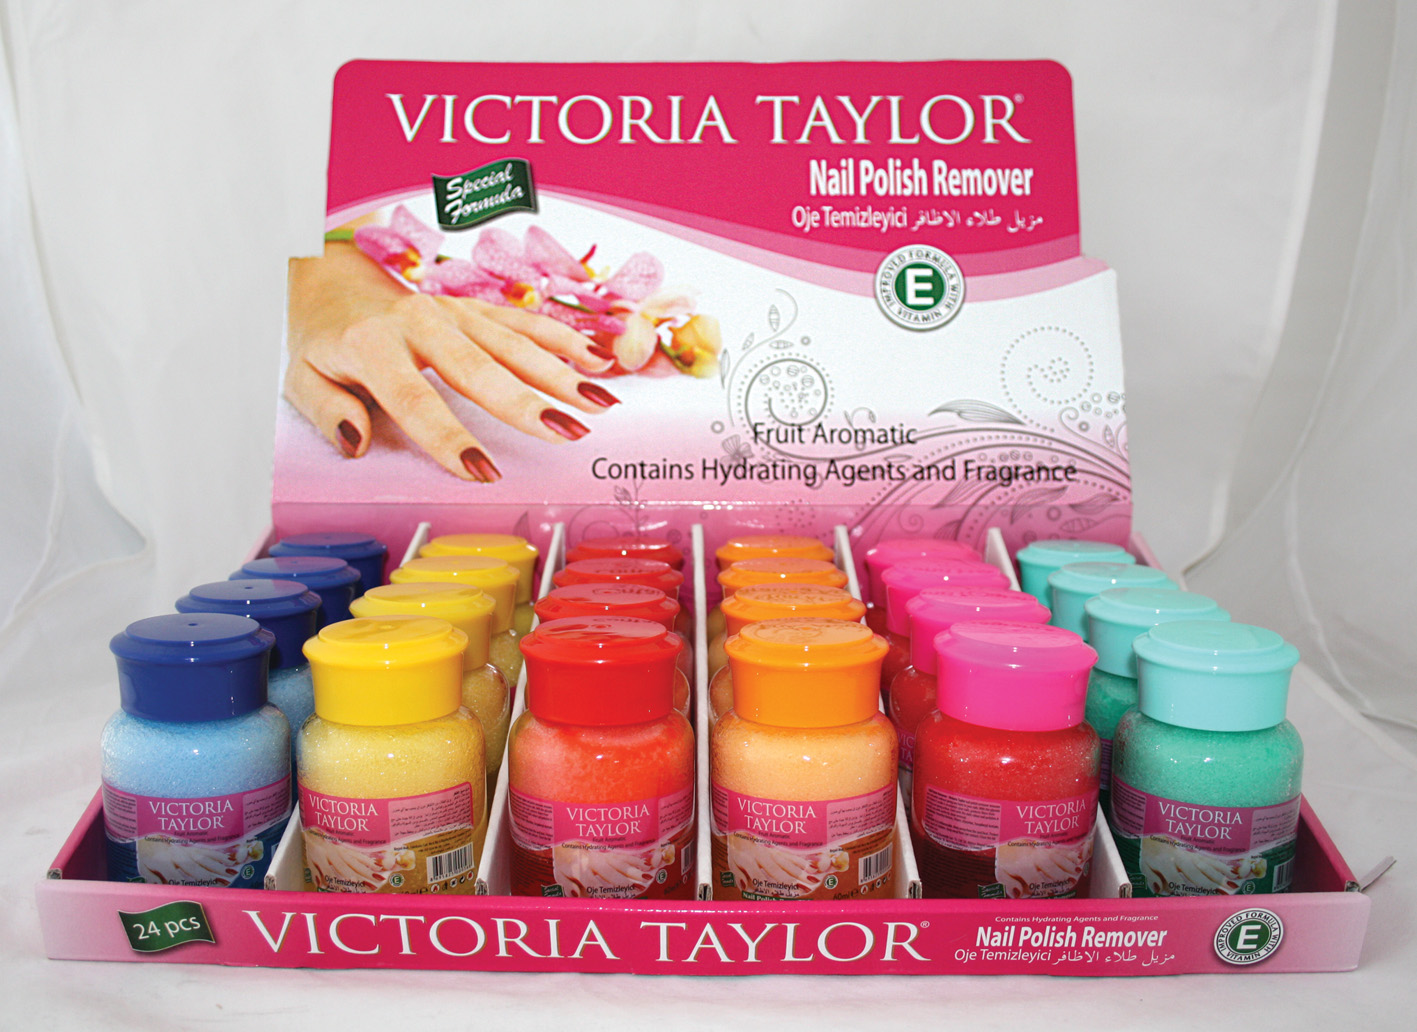 Victoria Taylor Nail polish remover sponges